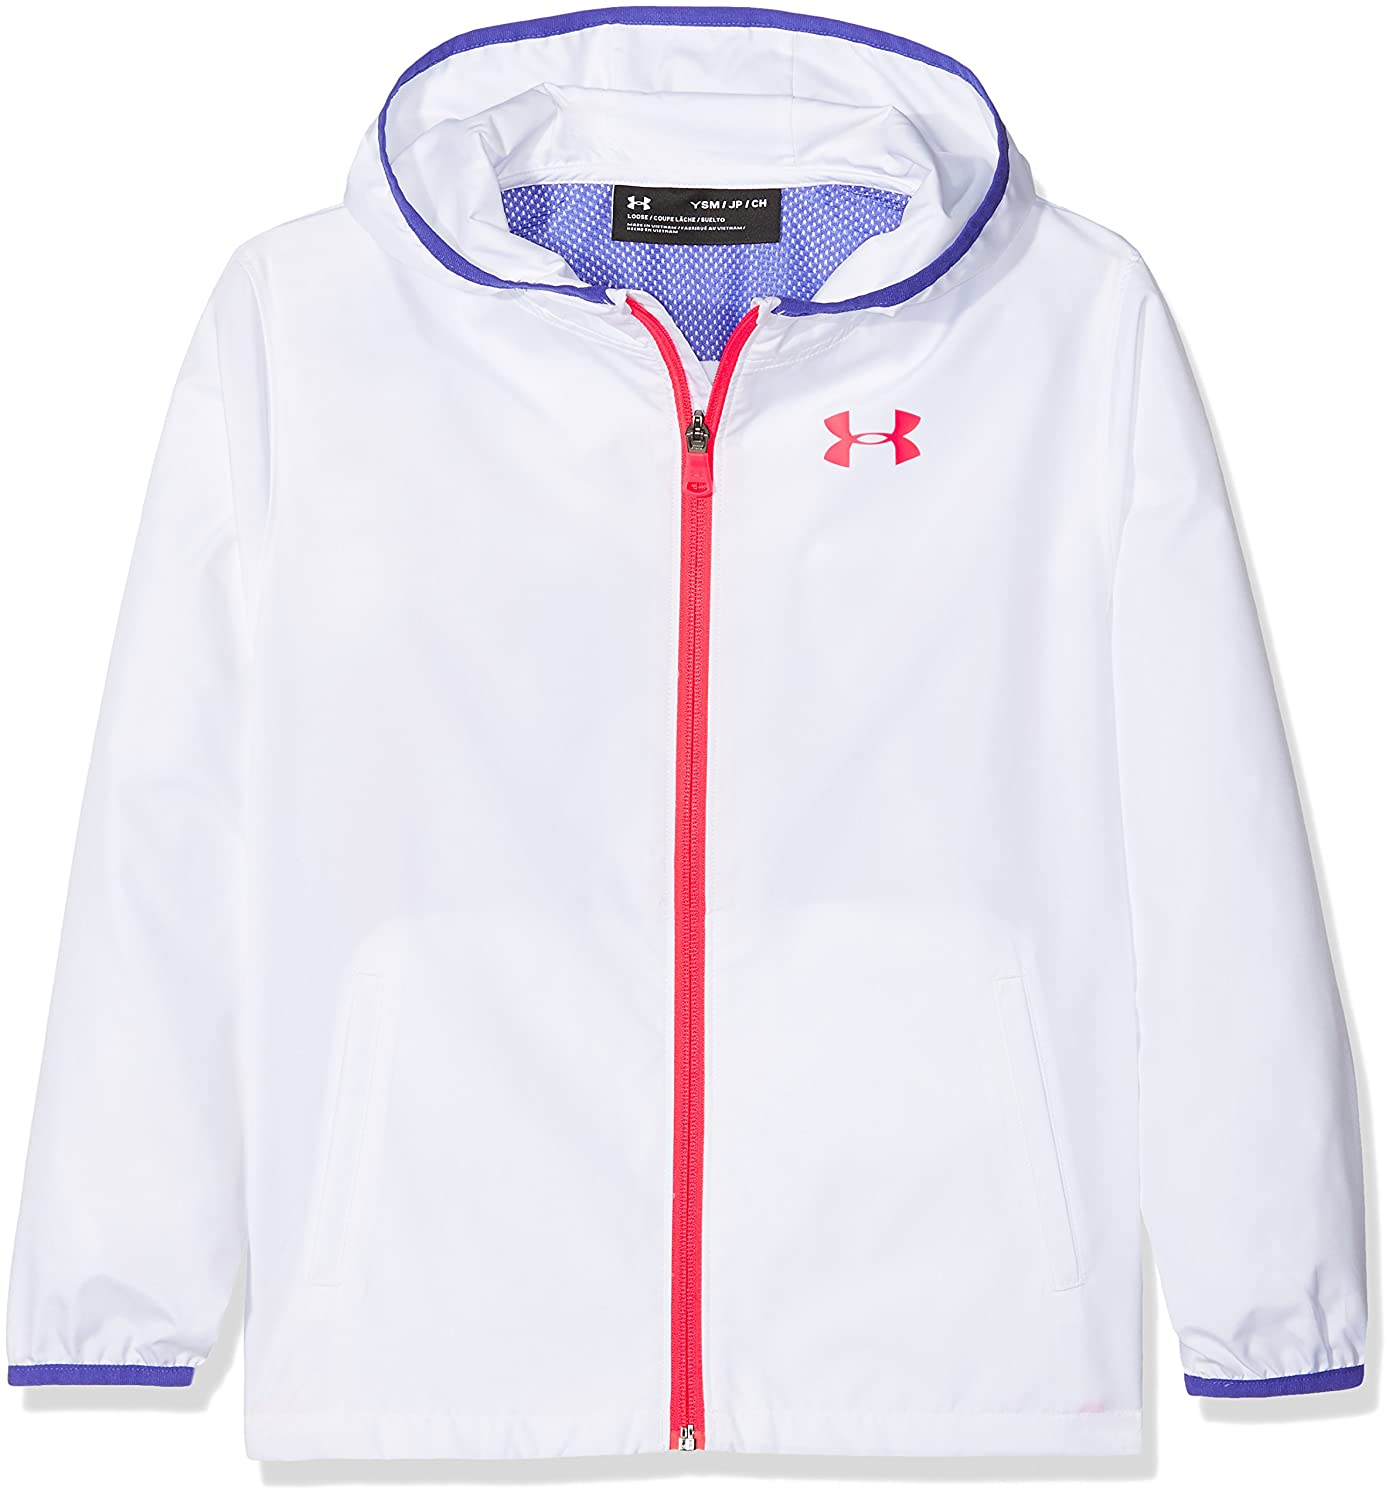 Under Armour Girls' Sackpack Jacket Under Armour Apparel 1309661